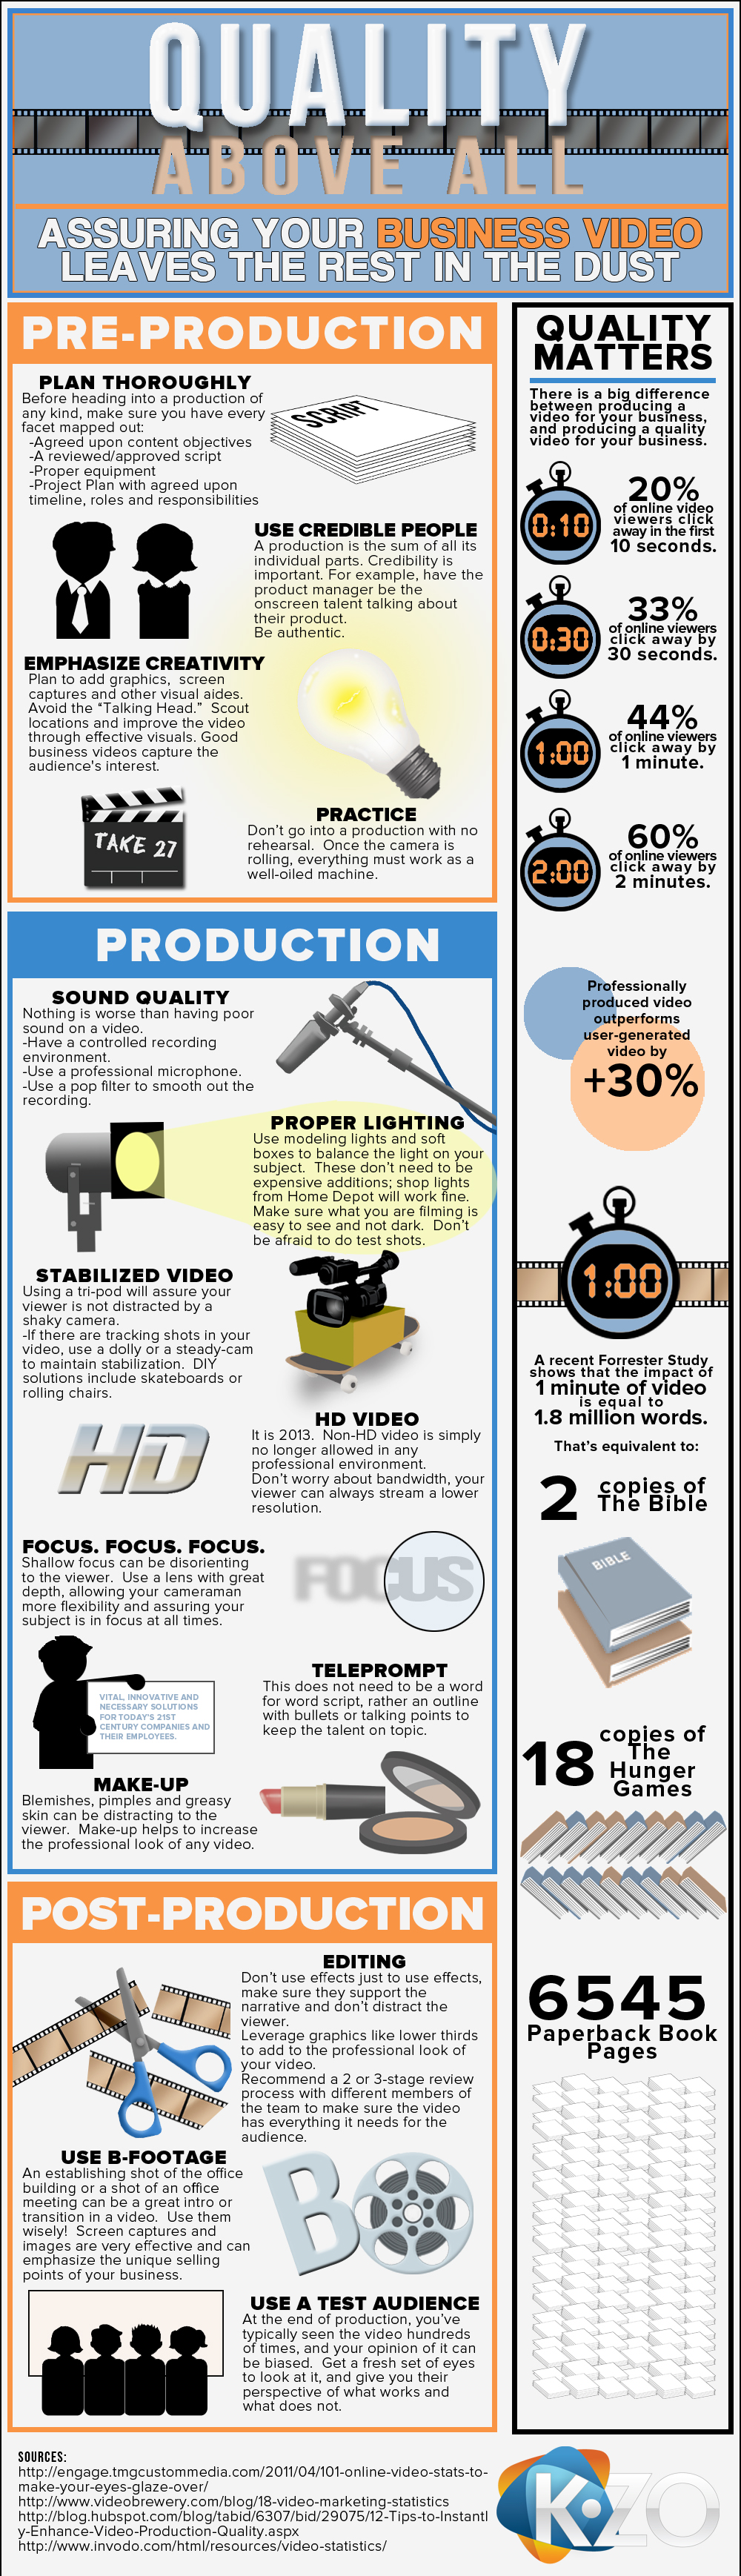 How To Make A Quality Business Video - Image 1